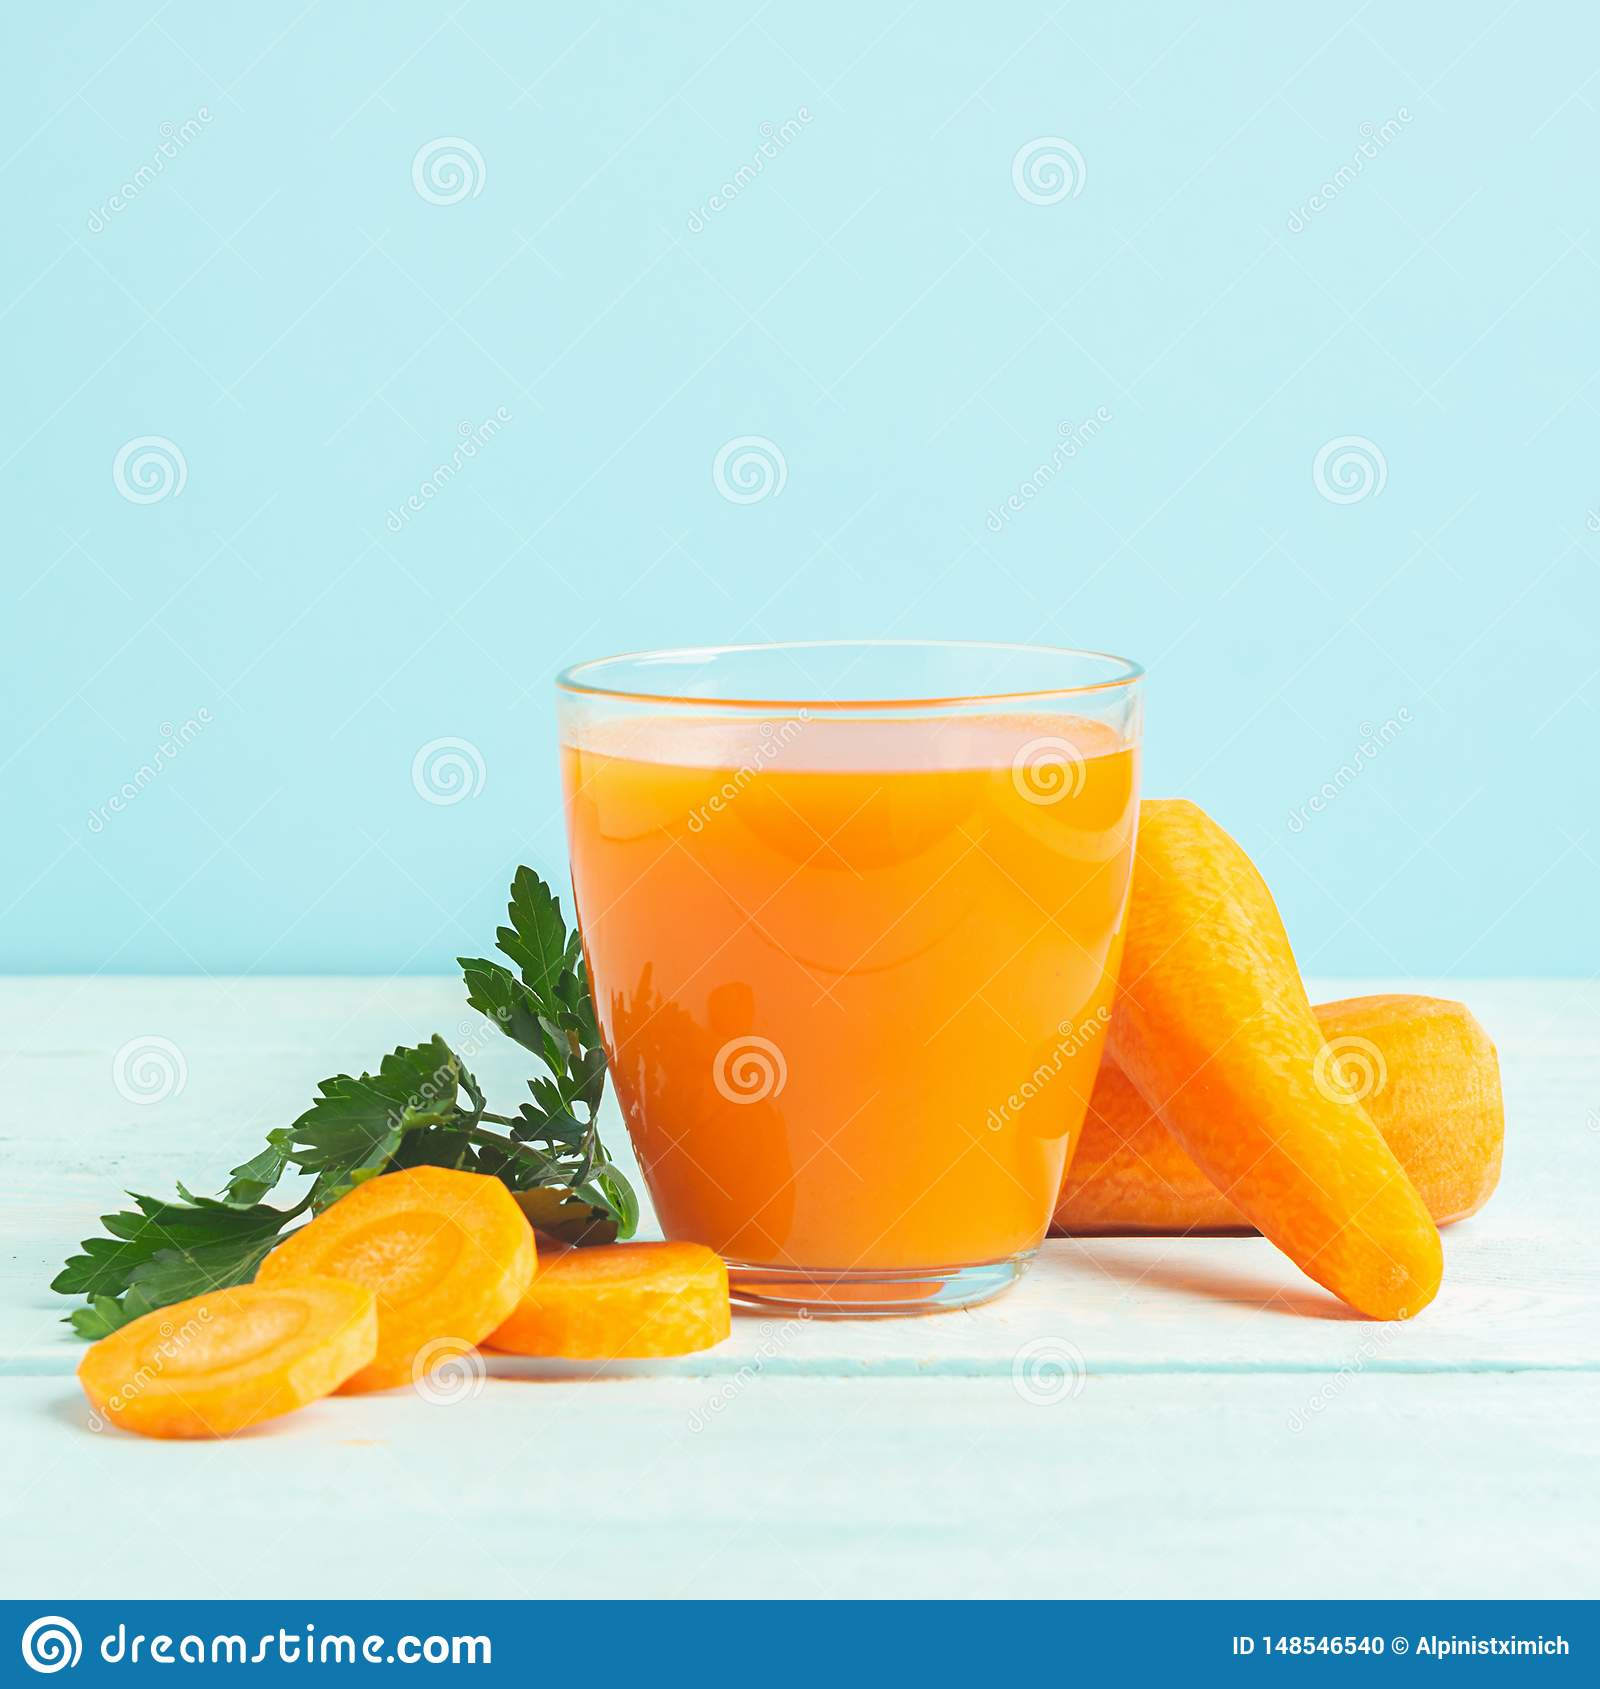 A glass of fresh carrot juice on a wooden blue background. Selective focus. Copy space